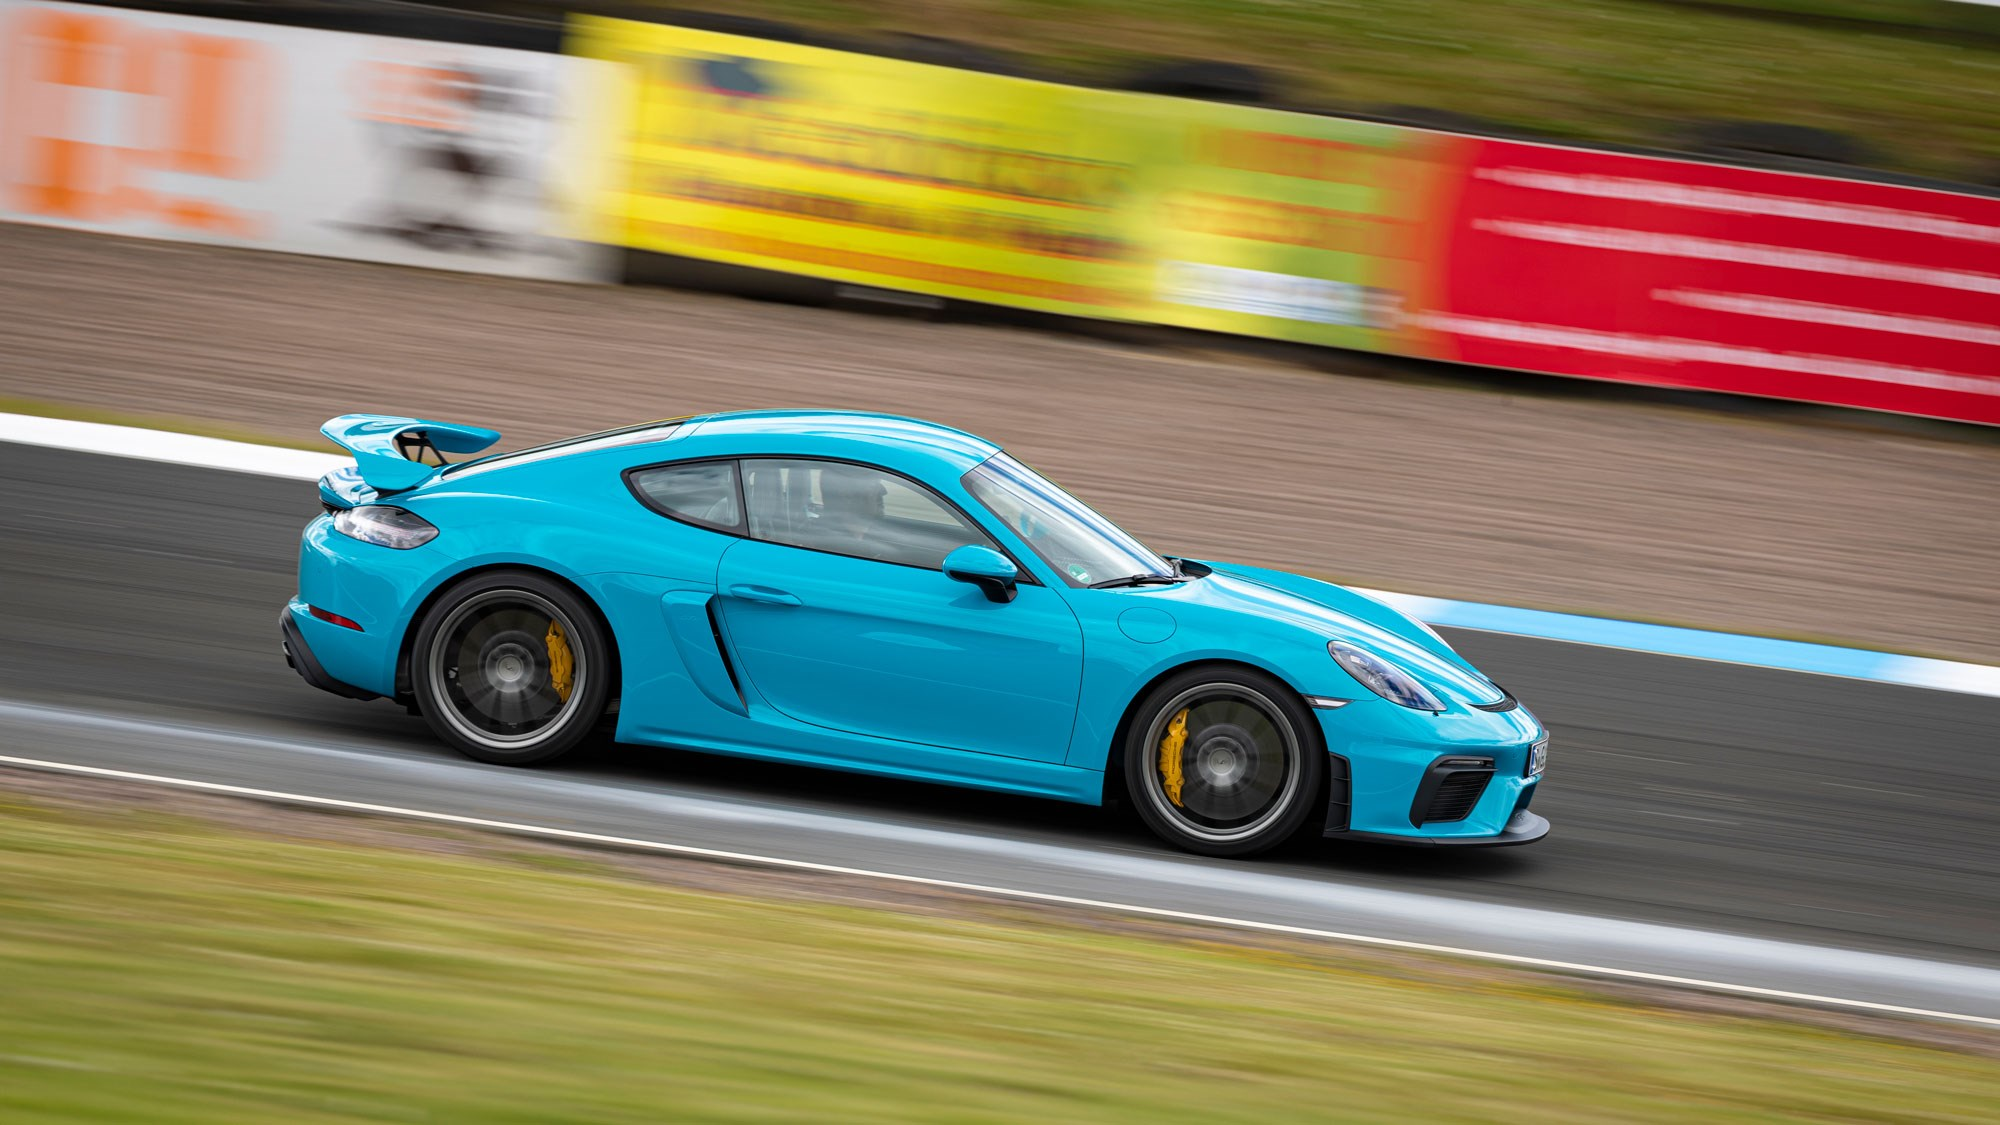 Porsche Cayman 718 GT4 review: mid-engined masterpiece | CAR Magazine